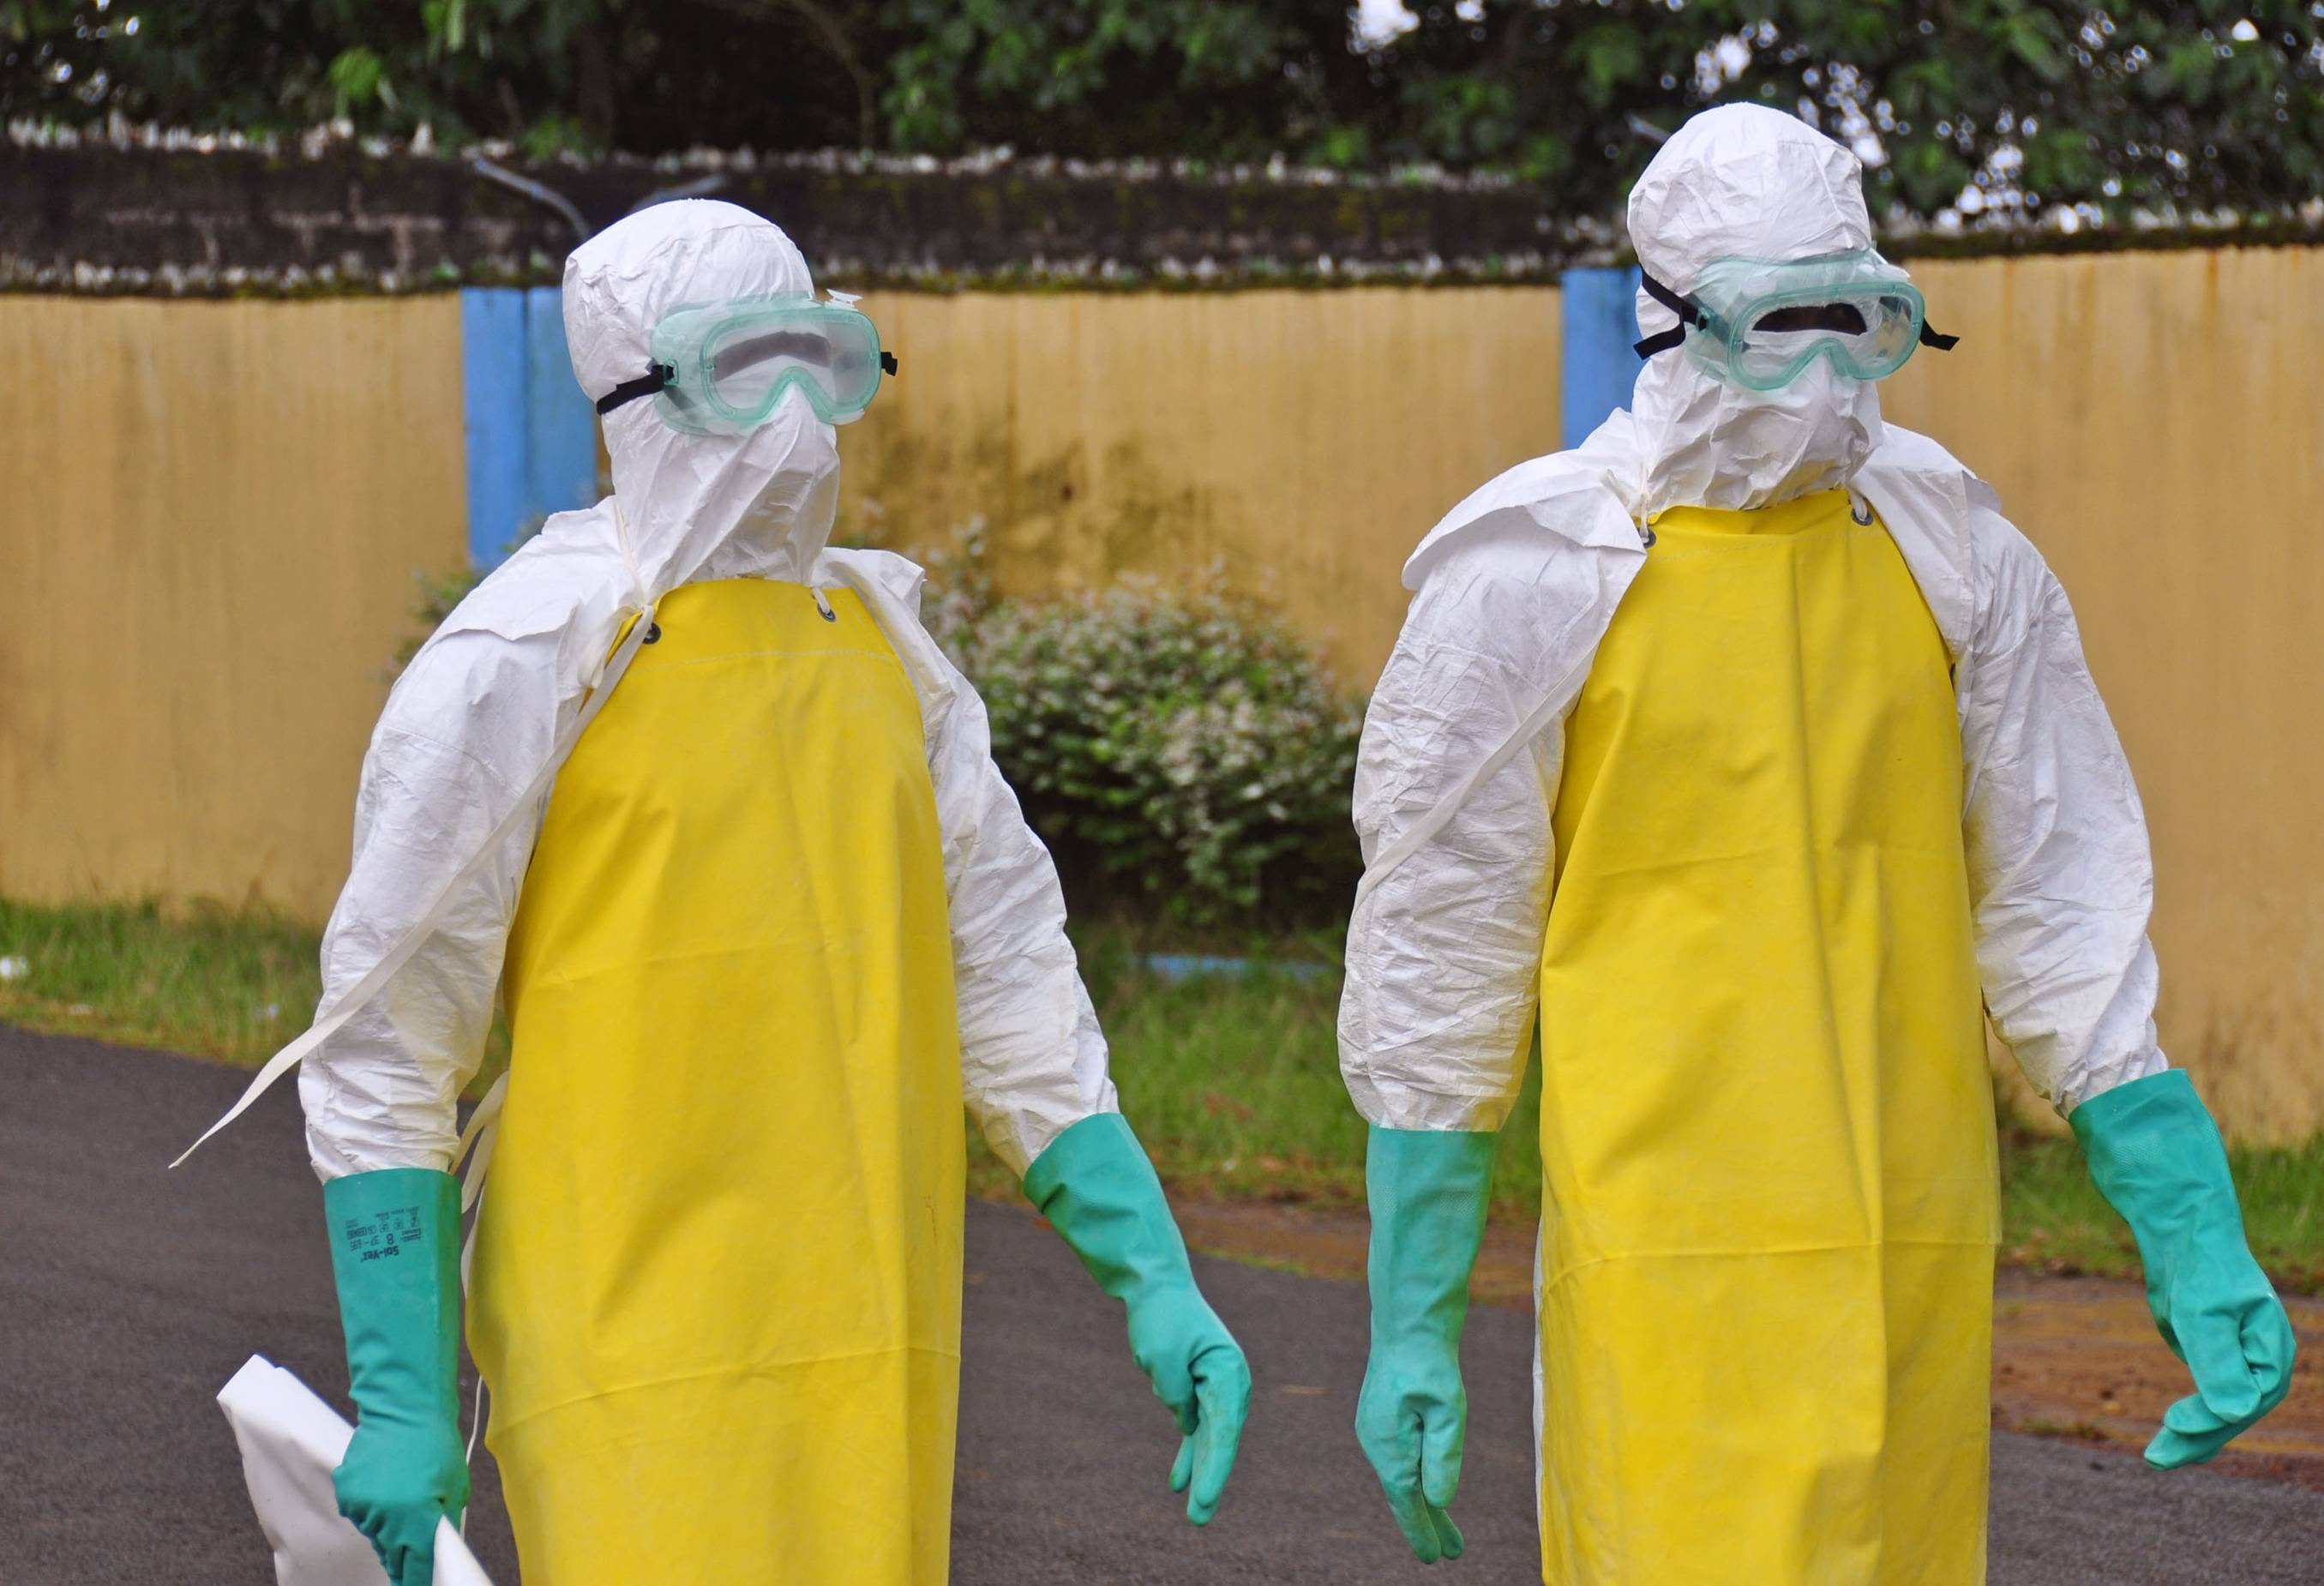 Another Ebola problem: Finding its natural source